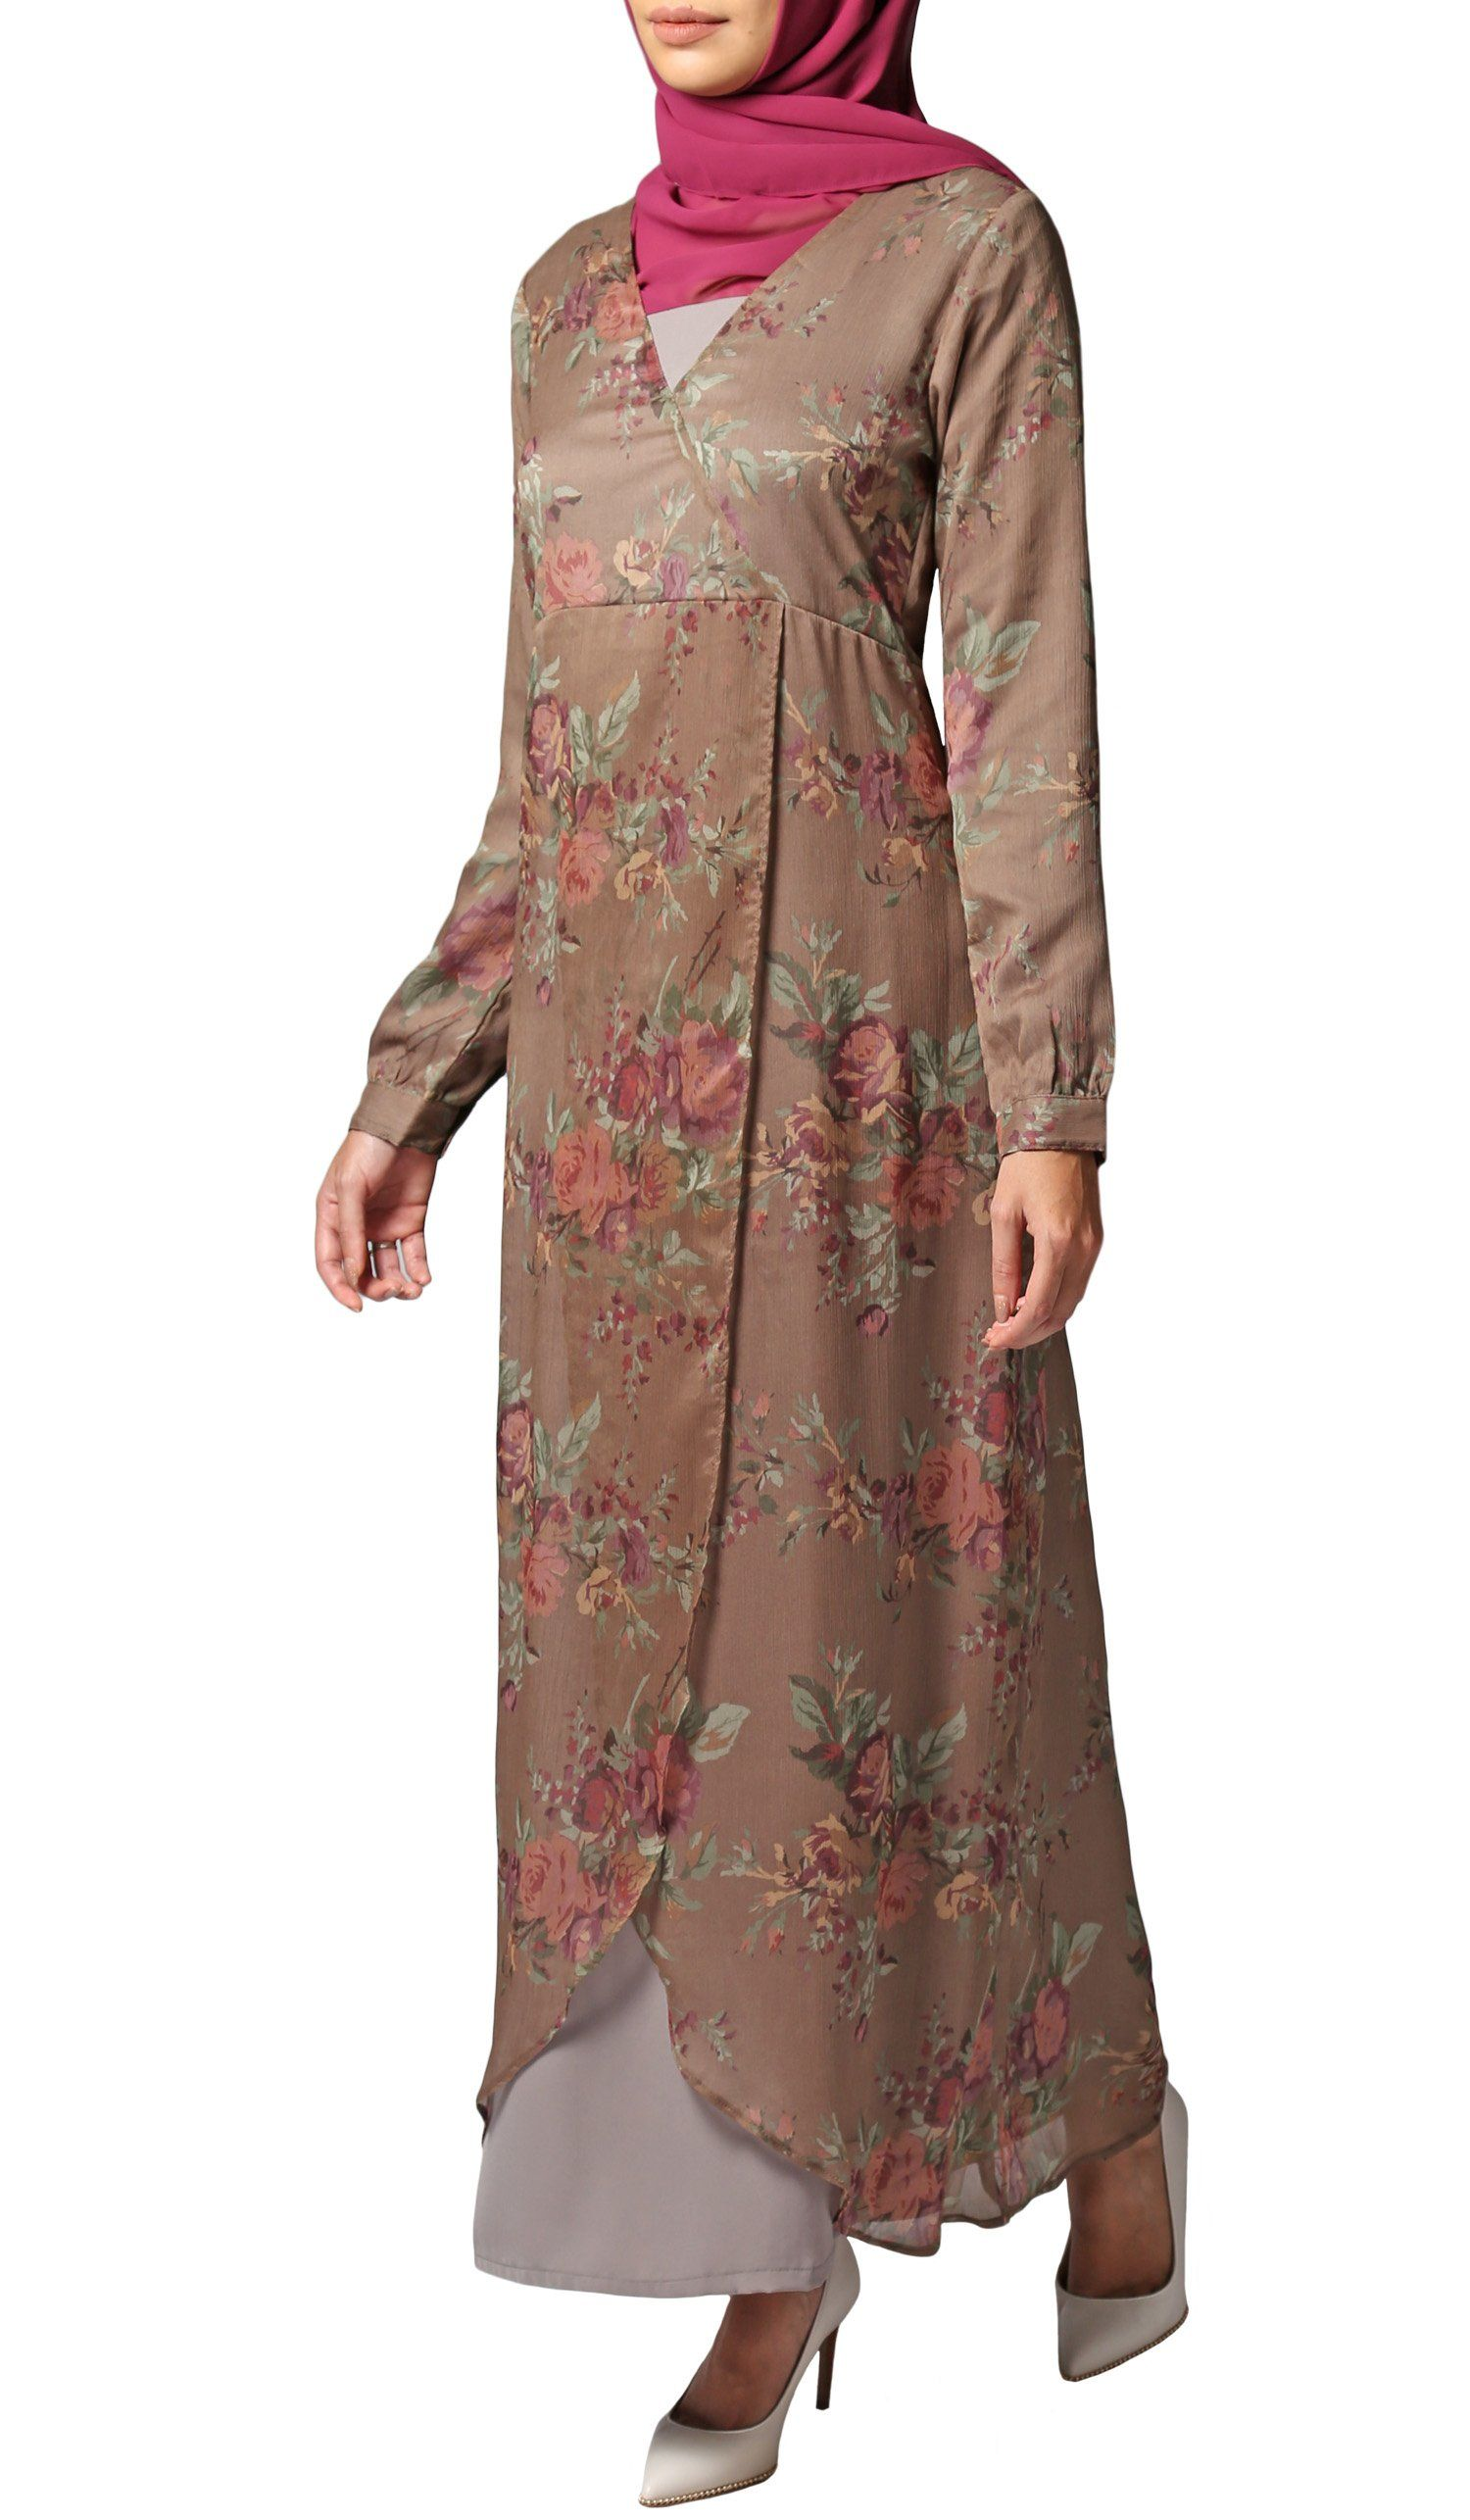 b026572aafd Brown Pink Chiffon Modest Islamic Maxi Dress